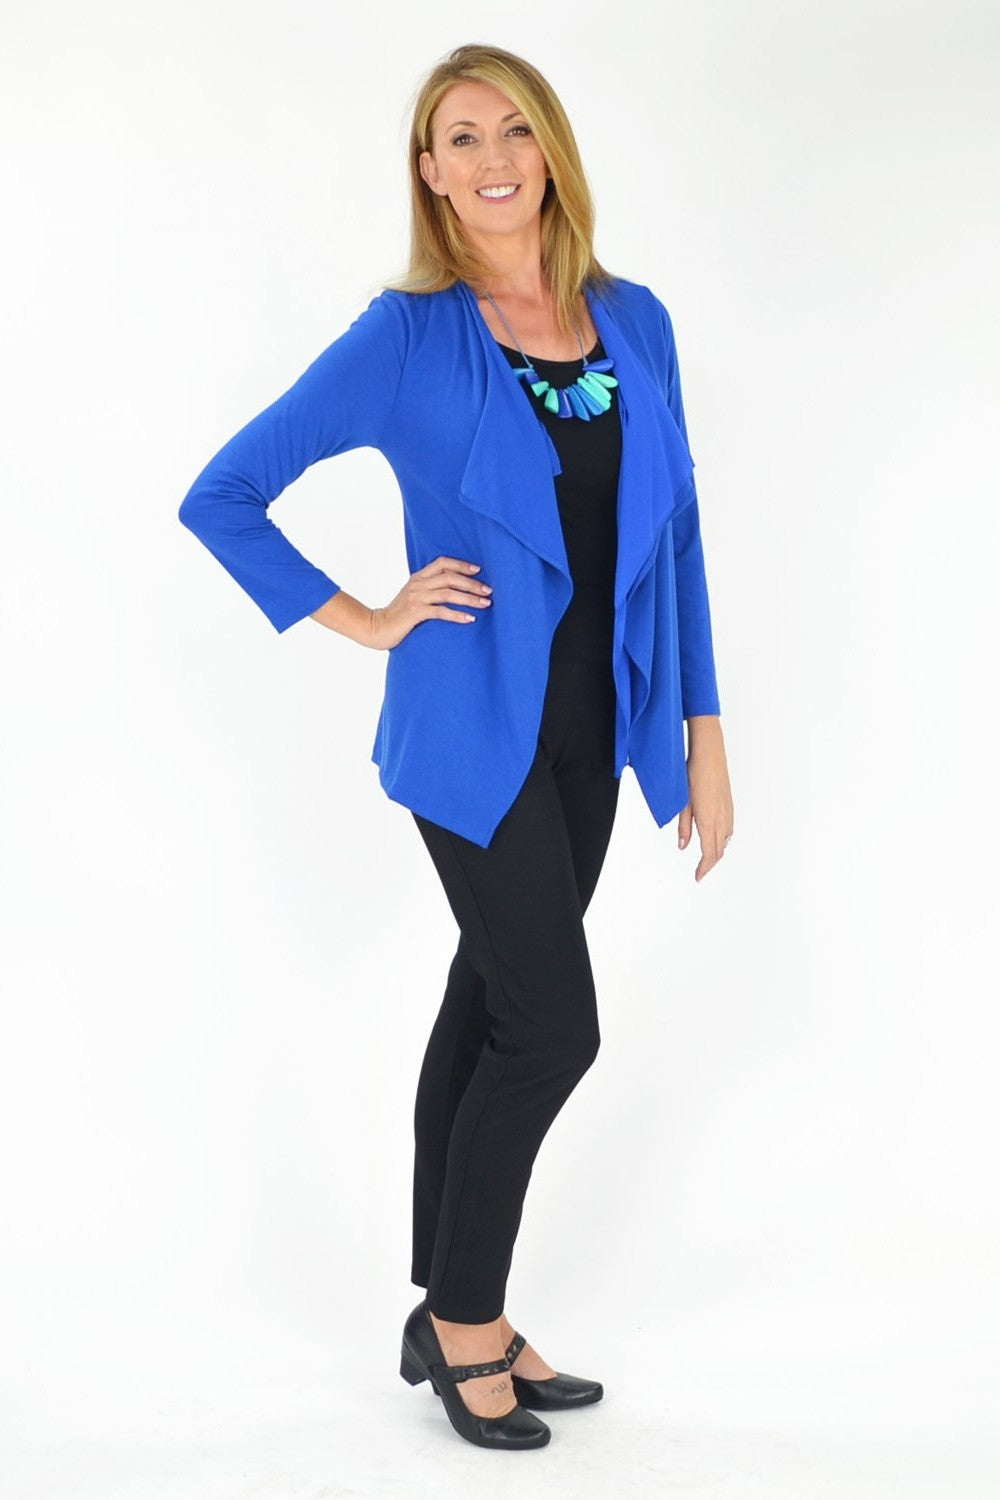 Jessica Cardigan - at I Love Tunics @ www.ilovetunics.com = Number One! Tunics Destination